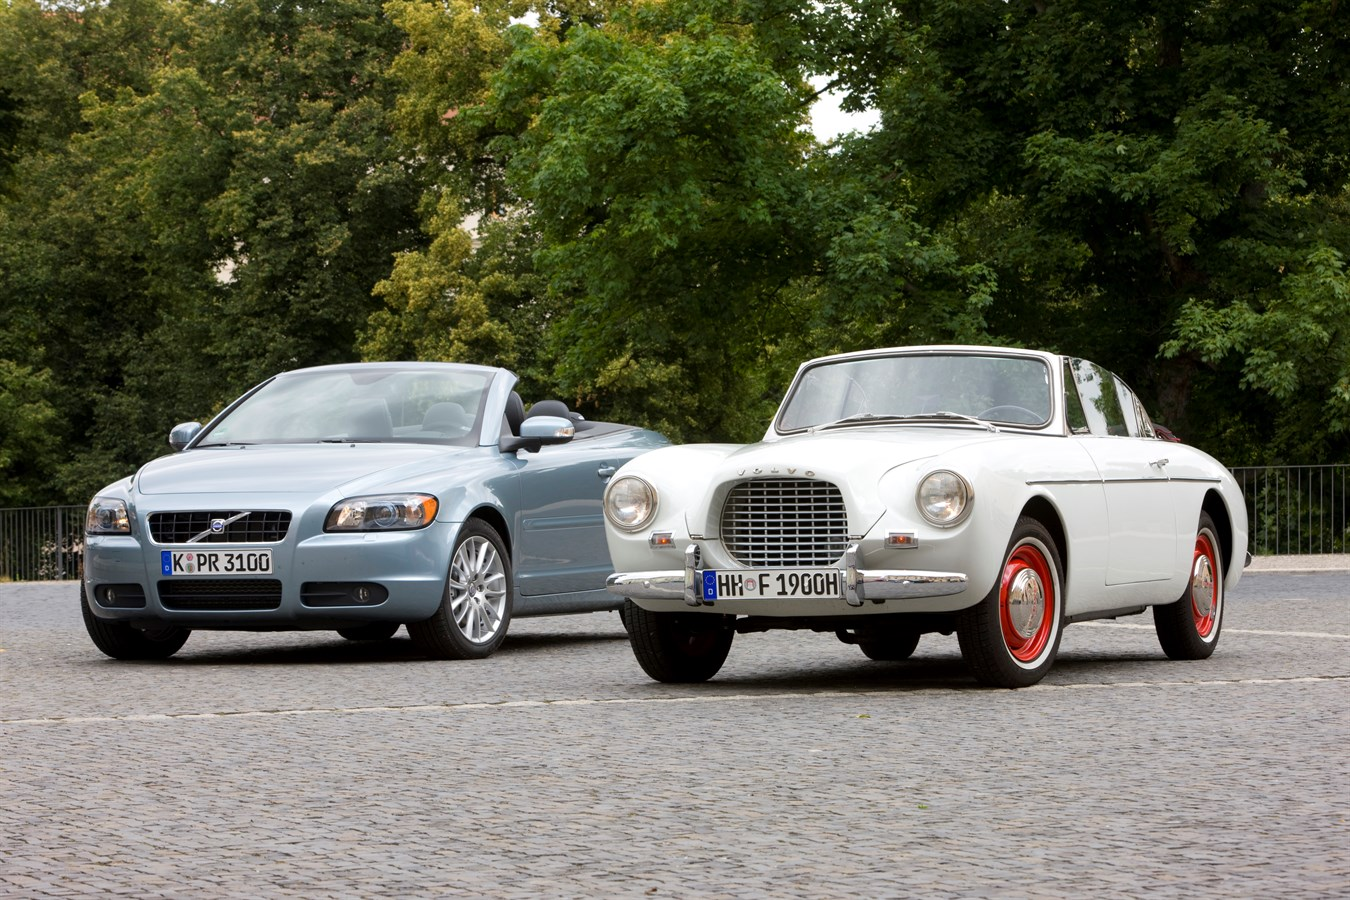 50 years of Volvo Cars in Germany